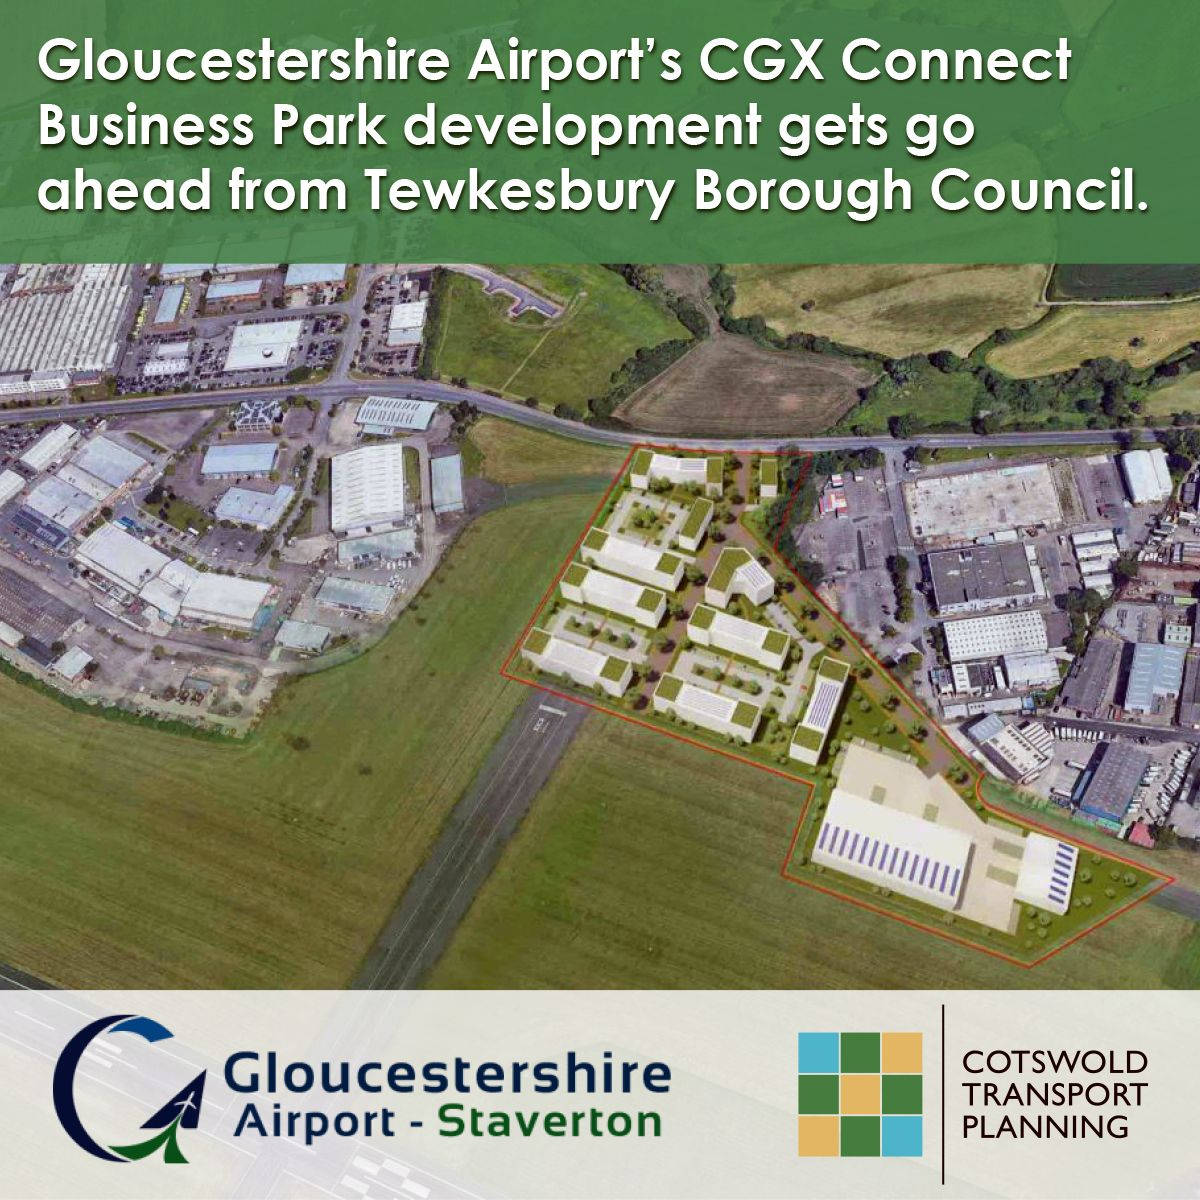 Gloucester Airport overview